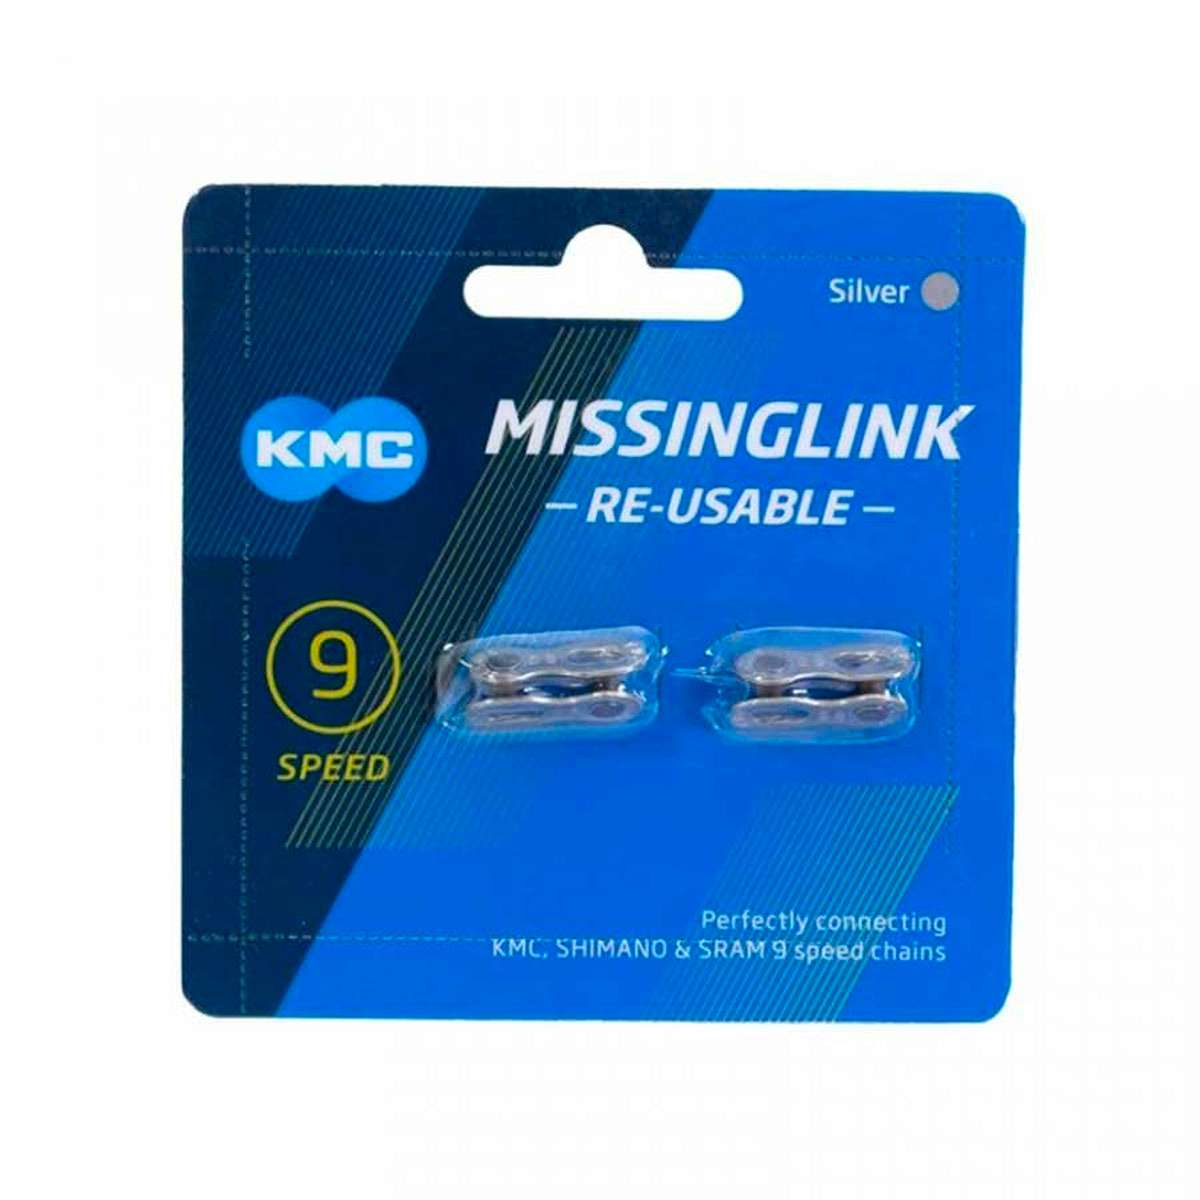 Kmc 9 Speed Bicycle Chain Missing Link 2 Pack 766759056605 - Kmc Tax Payment Online